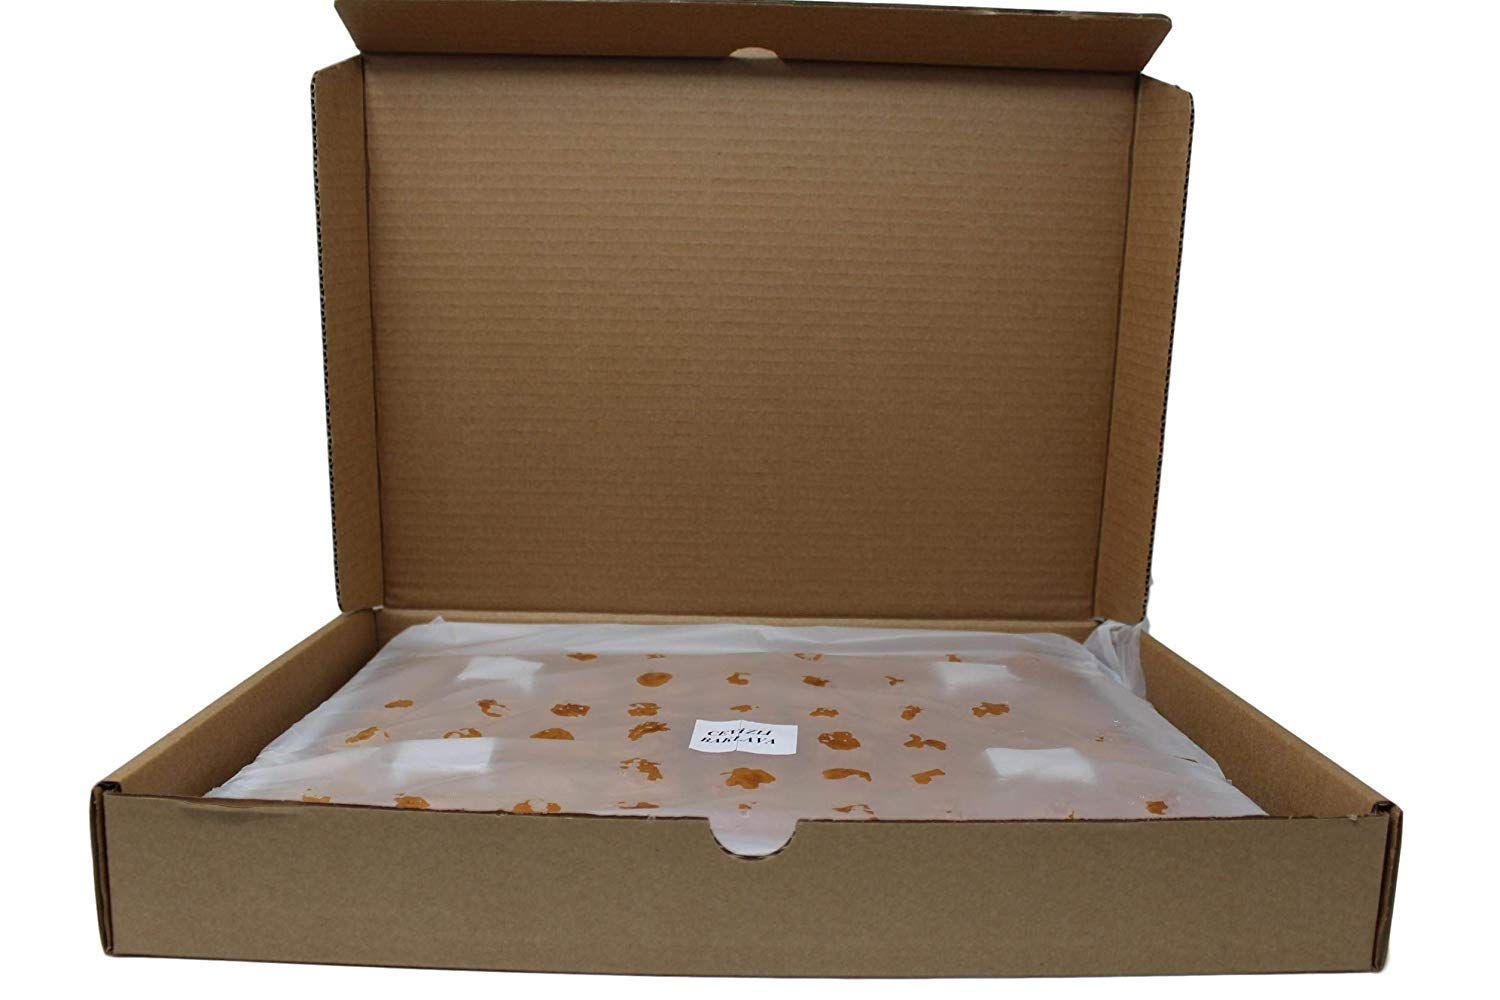 Luxury Baklava with Walnuts Wholesale box Contains 5 Trays, total 33lb Baklava big cut mouthful pieces by Shonti (Image #3)